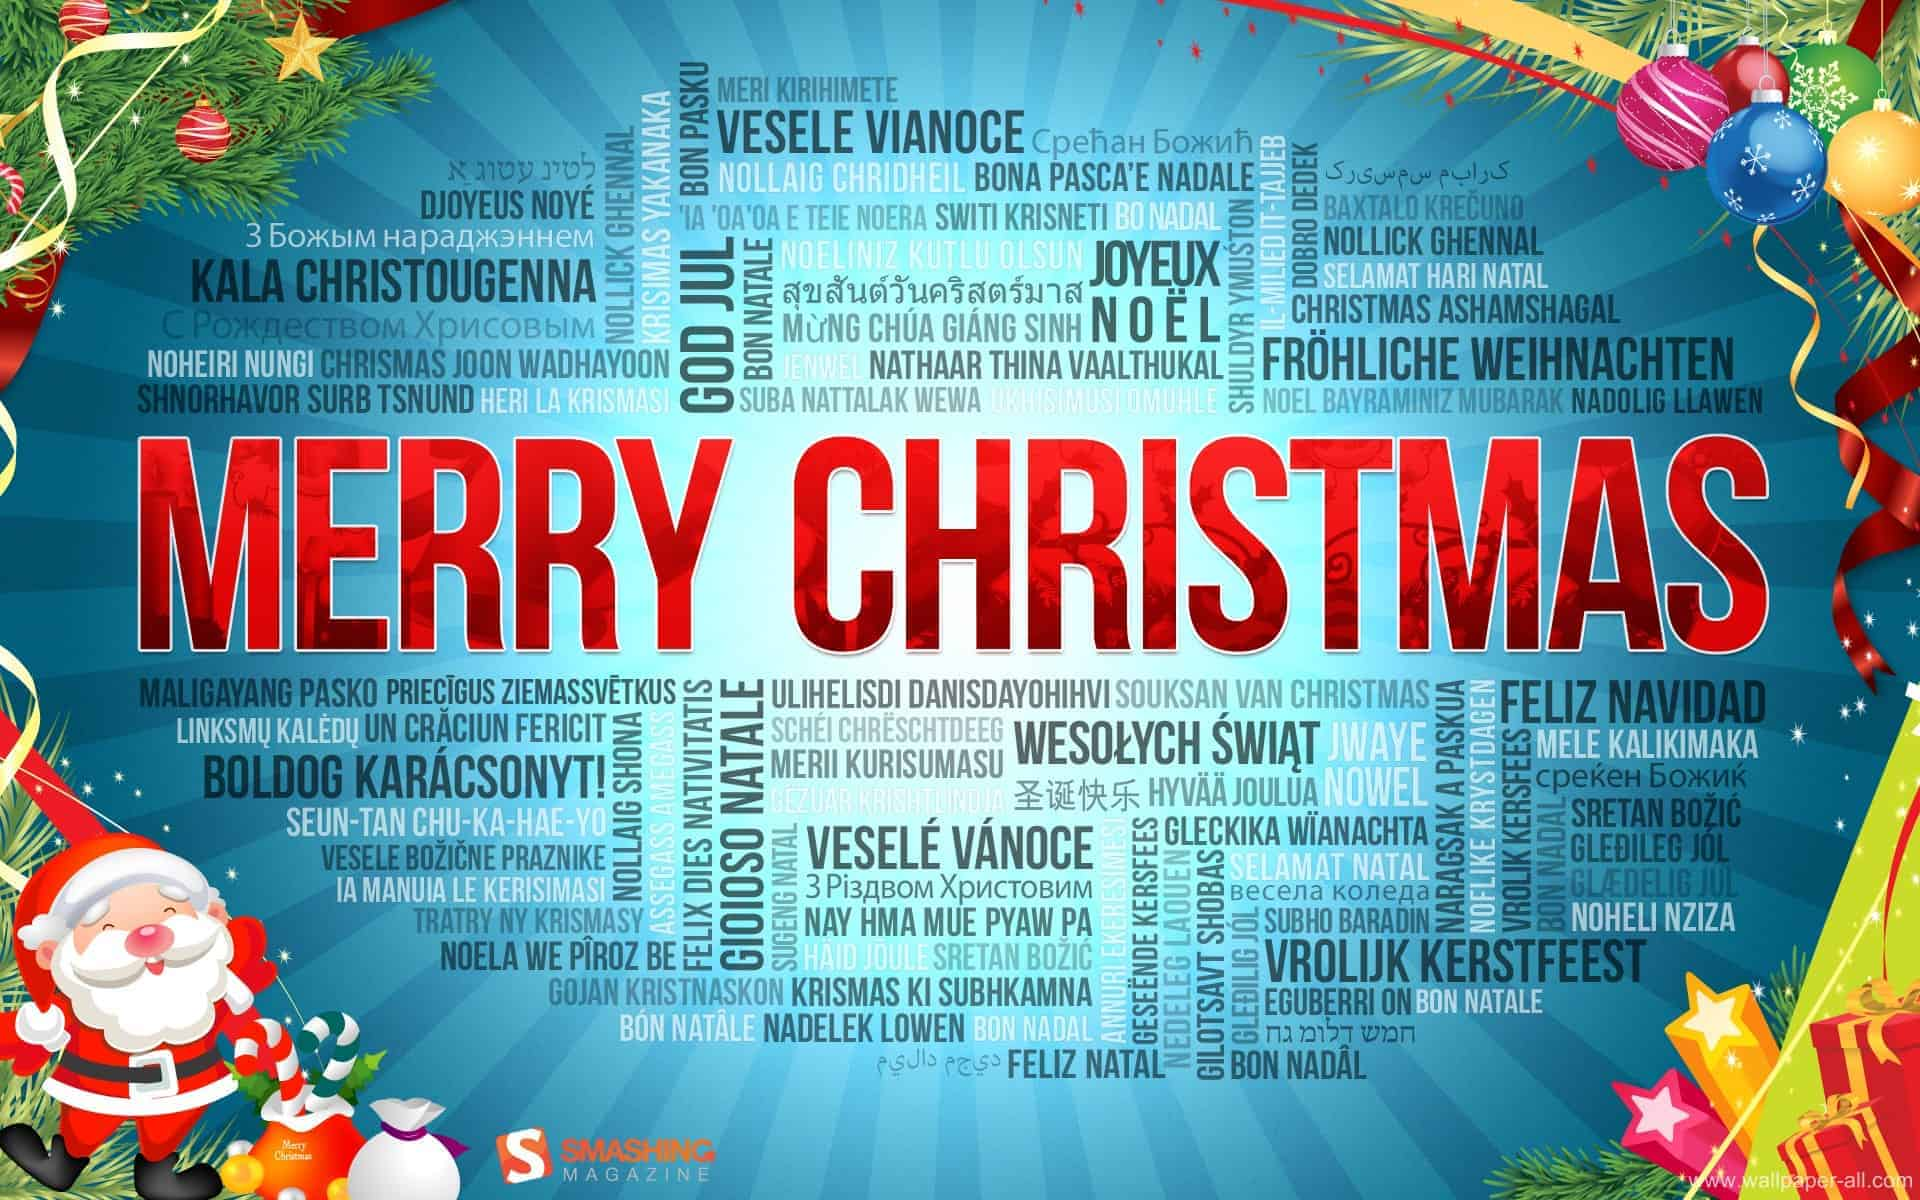 merry christmas and happy new year in many languages terminology